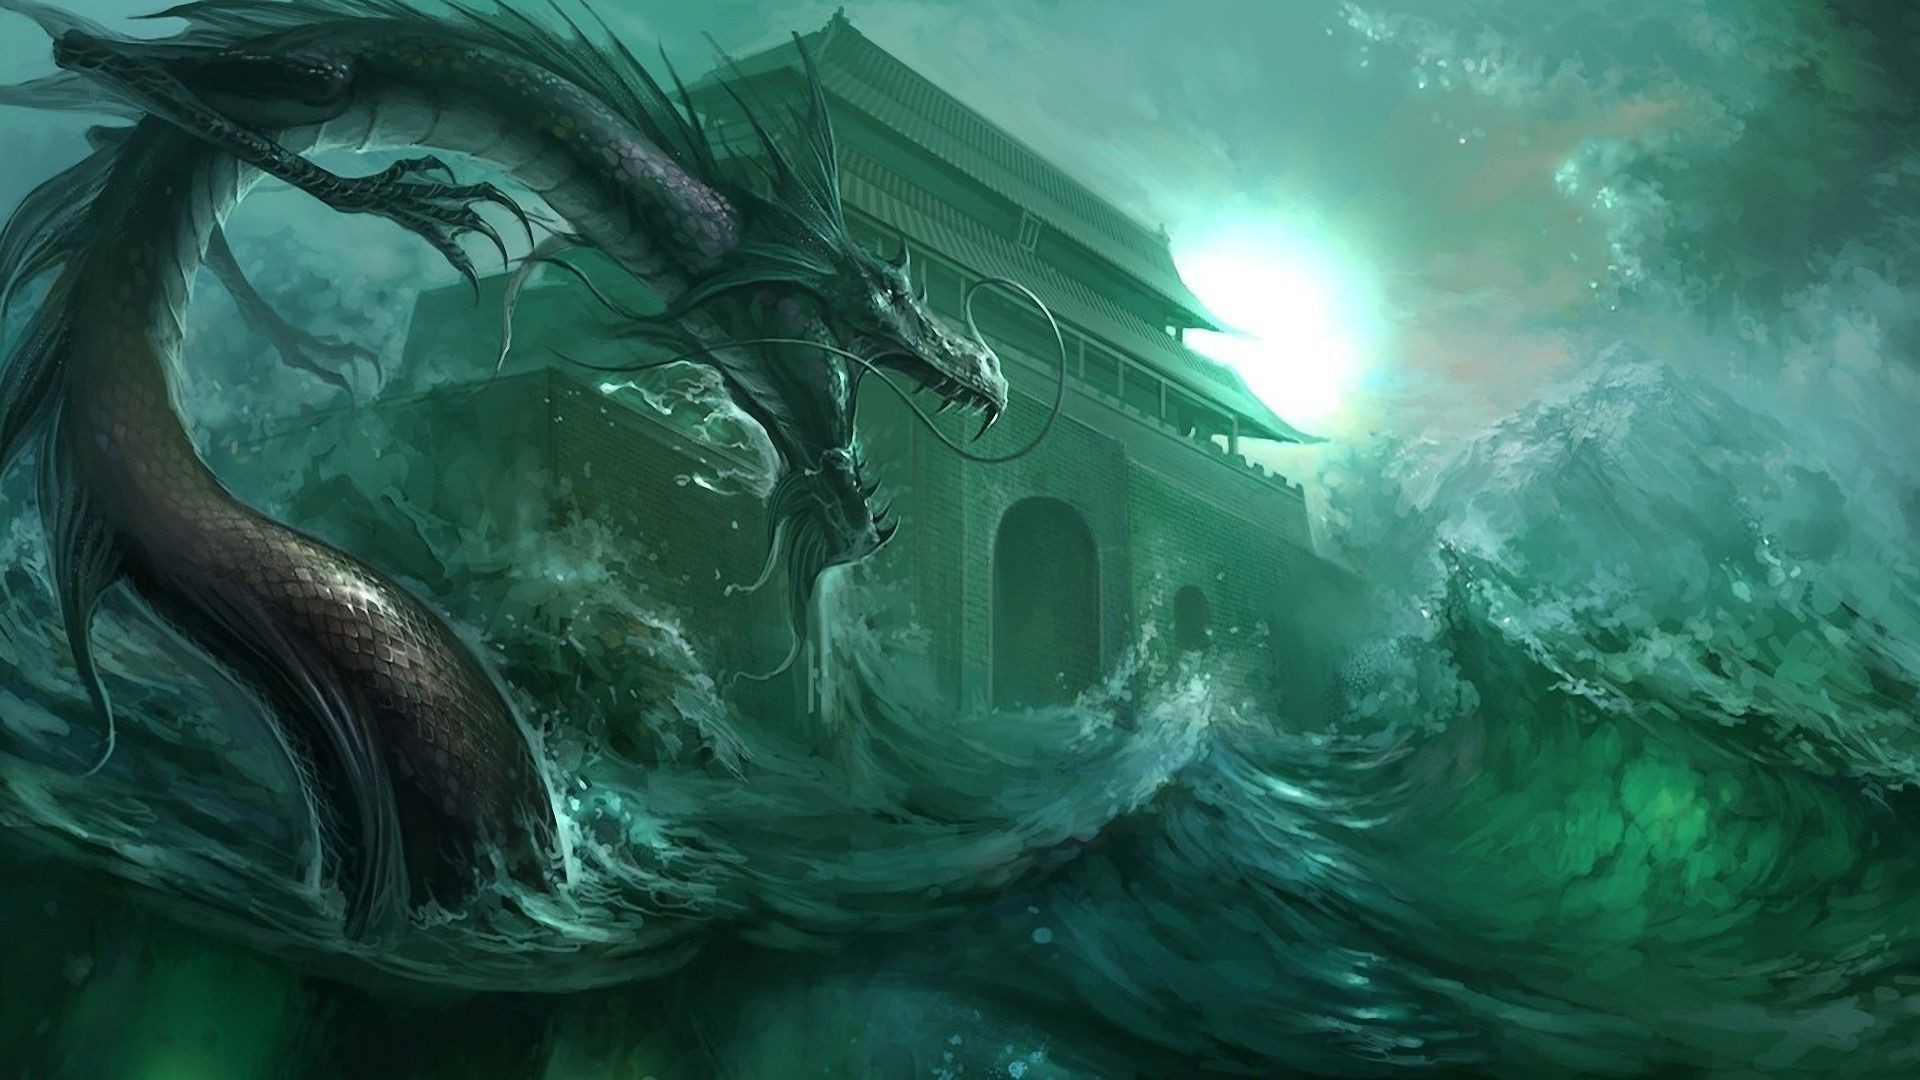 Green dragon wallpaper 71 images - Dragon backgrounds 1920x1080 ...